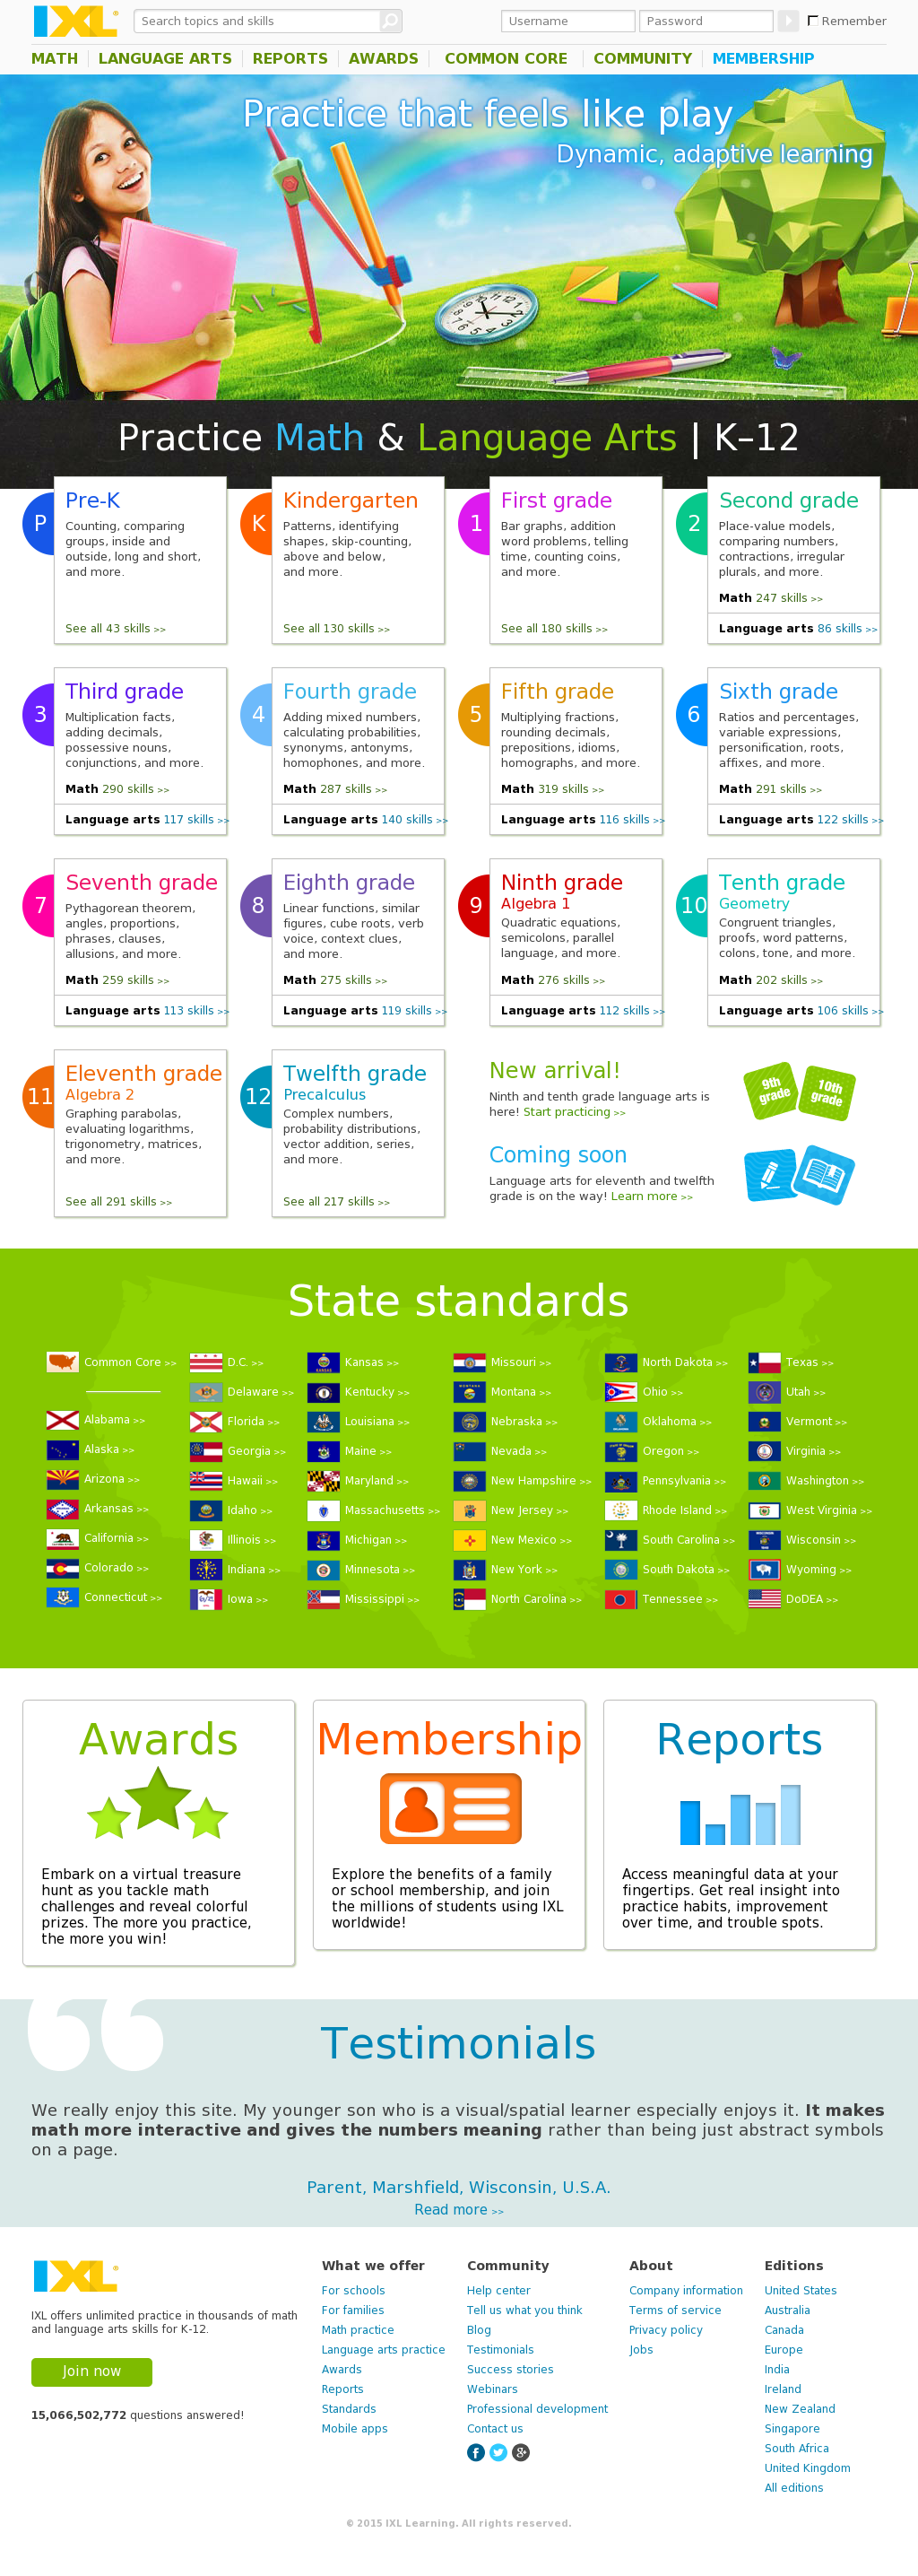 IXL Learning Competitors, Revenue and Employees - Owler Company Profile